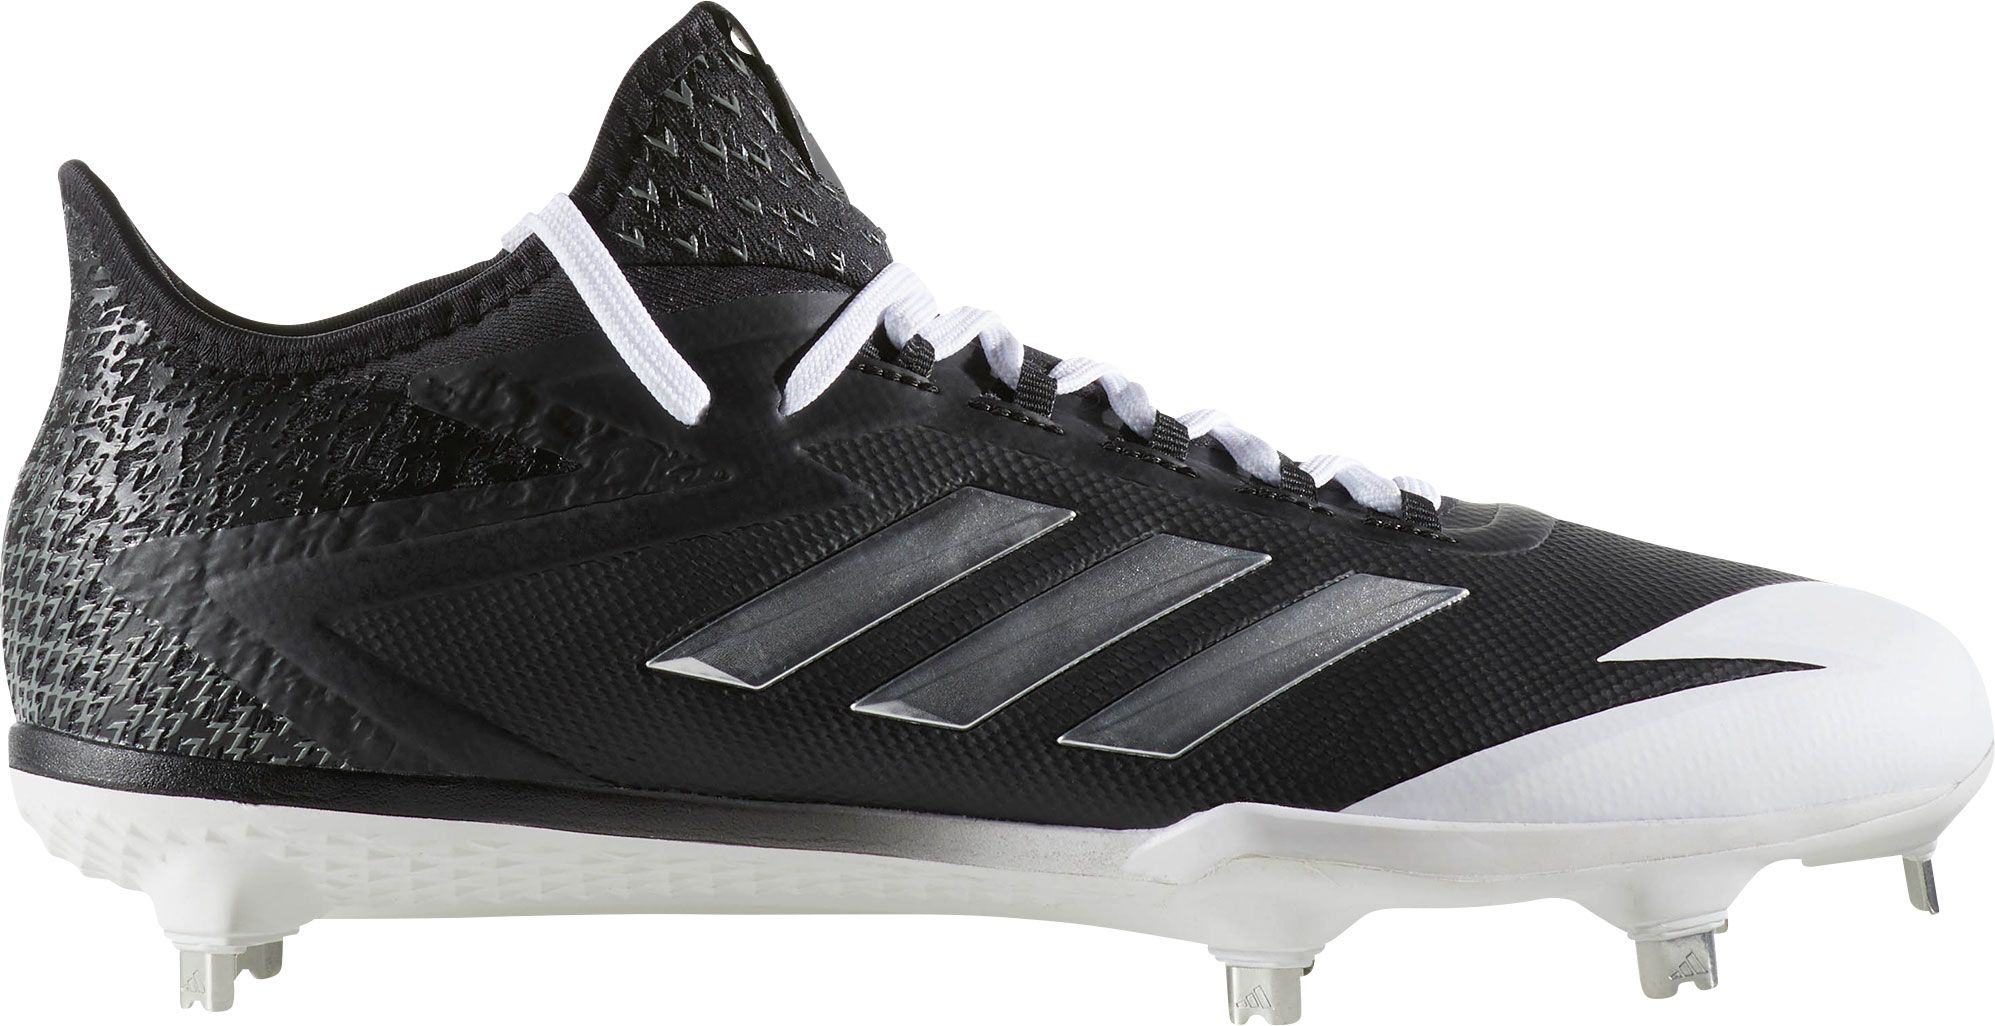 Adidas Men's Adizero Afterburner Iv Baseball Cleats by Adidas